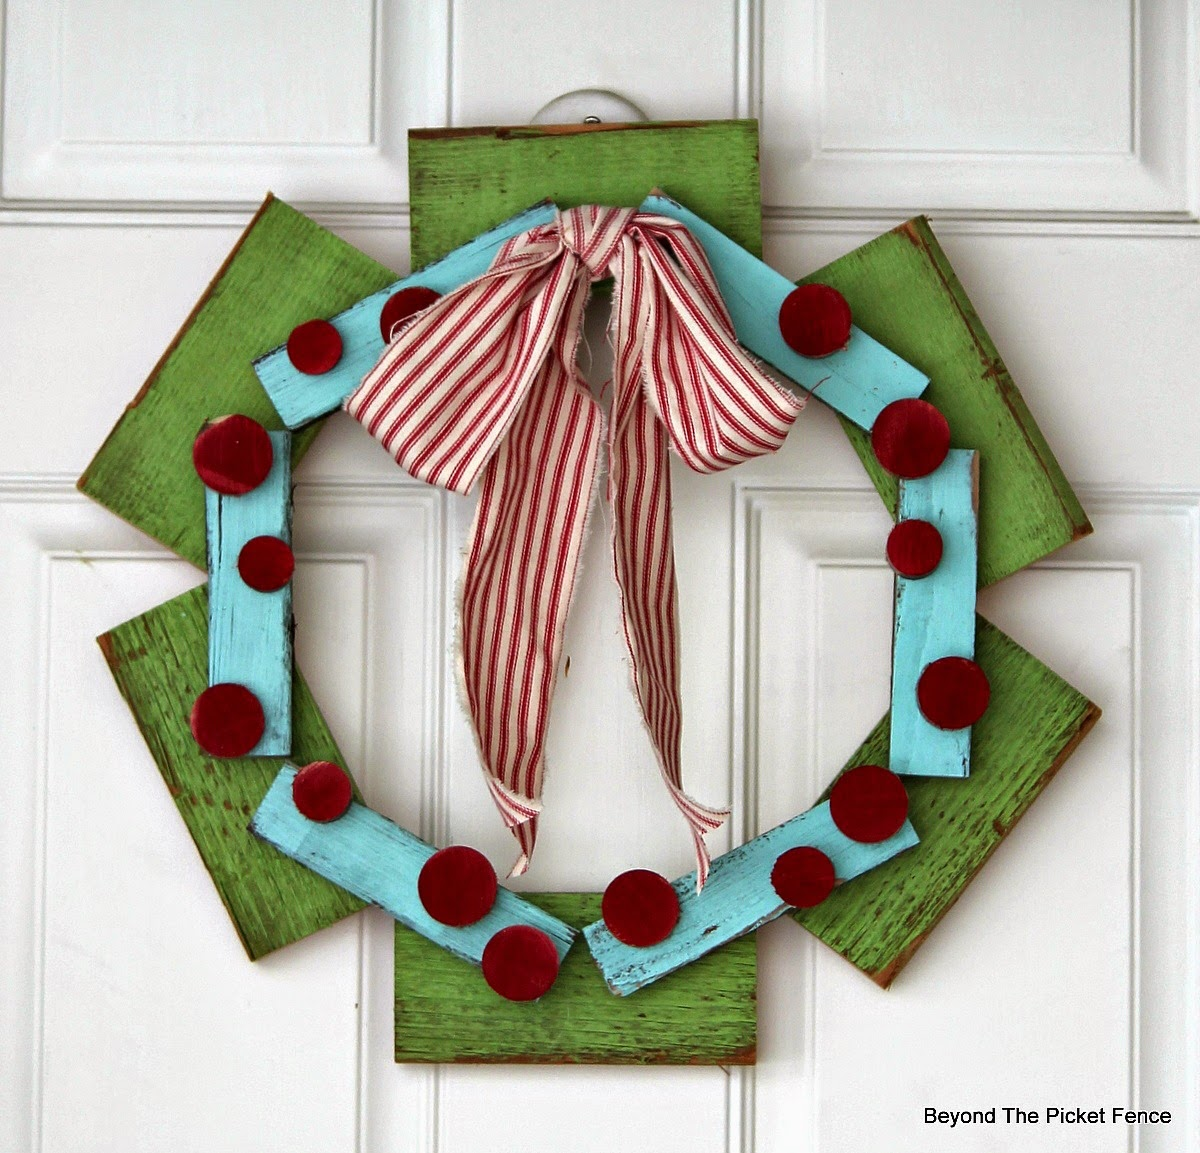 12 days of Christmas Scrap Wood Wreath http://bec4-beyondthepicketfence.blogspot.com/2014/11/12-days-of-christmas-day-3-scrap-wood_10.html